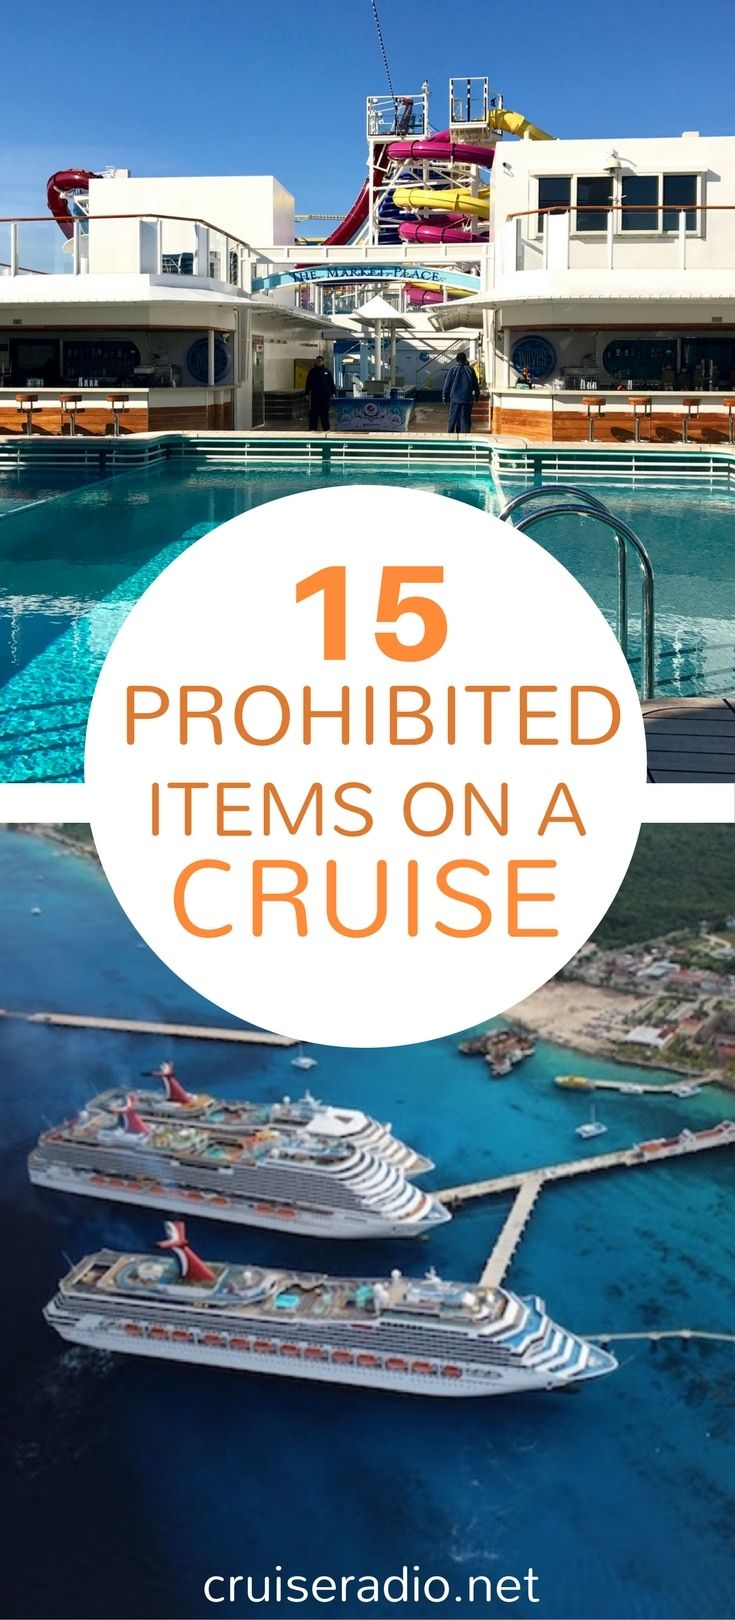 15 Prohibited Items On A Cruise Ship